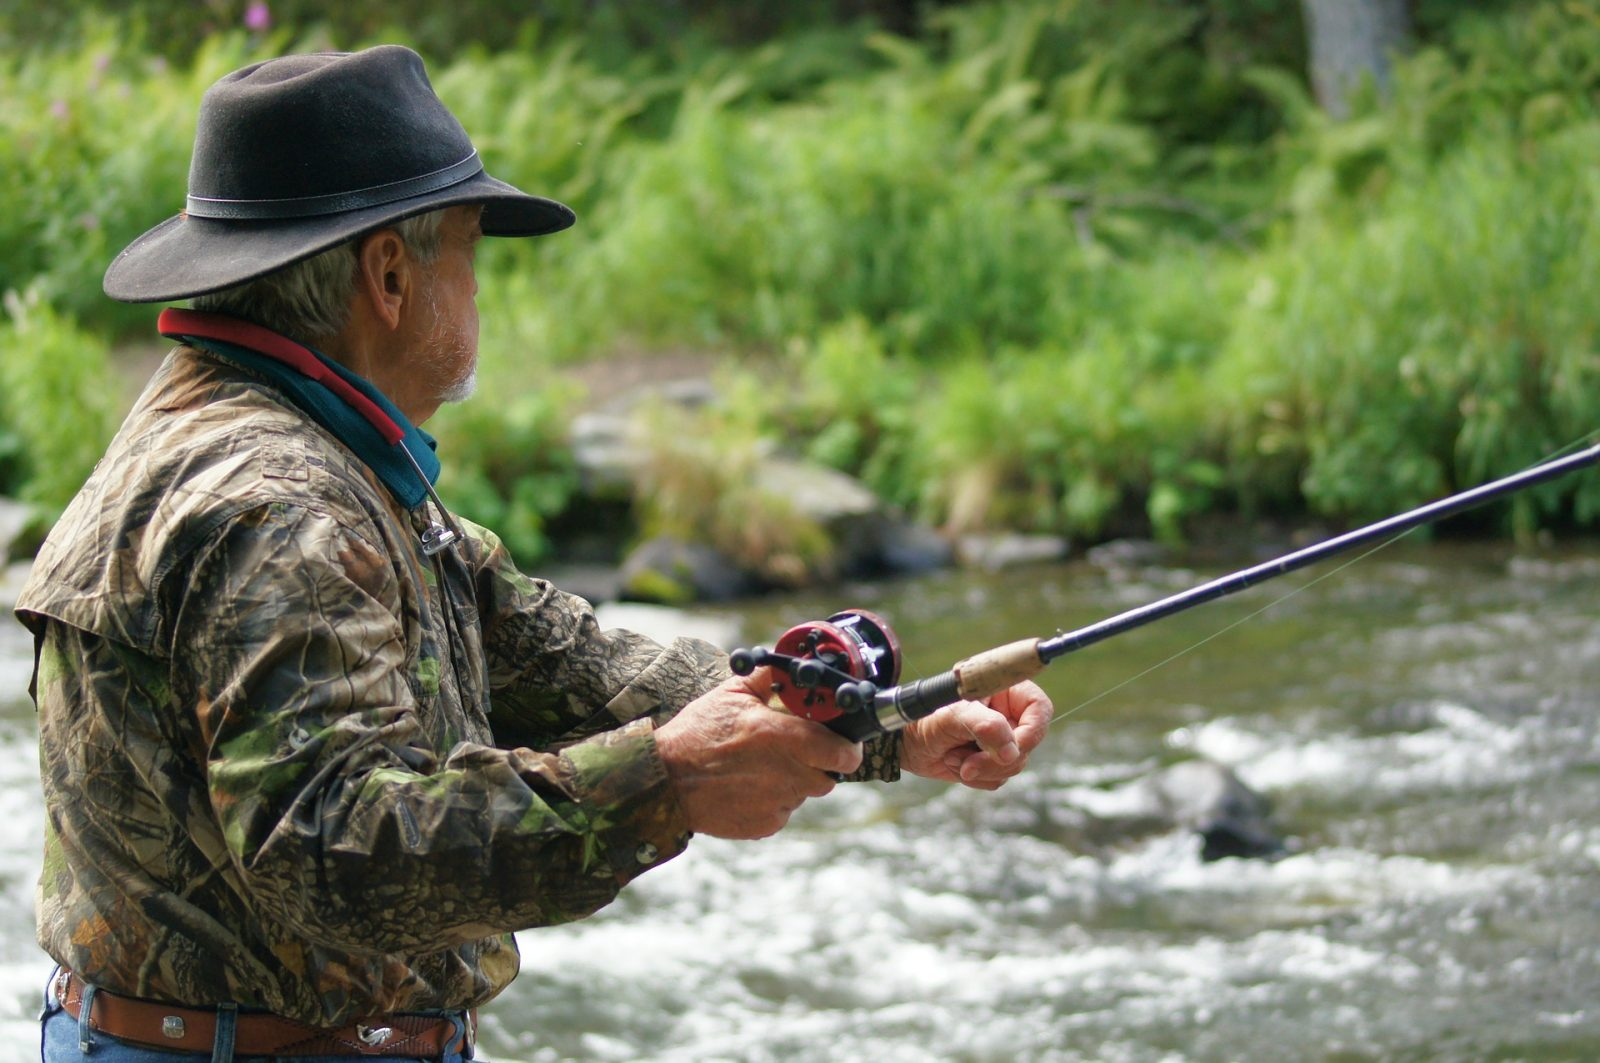 Custer County Fishing